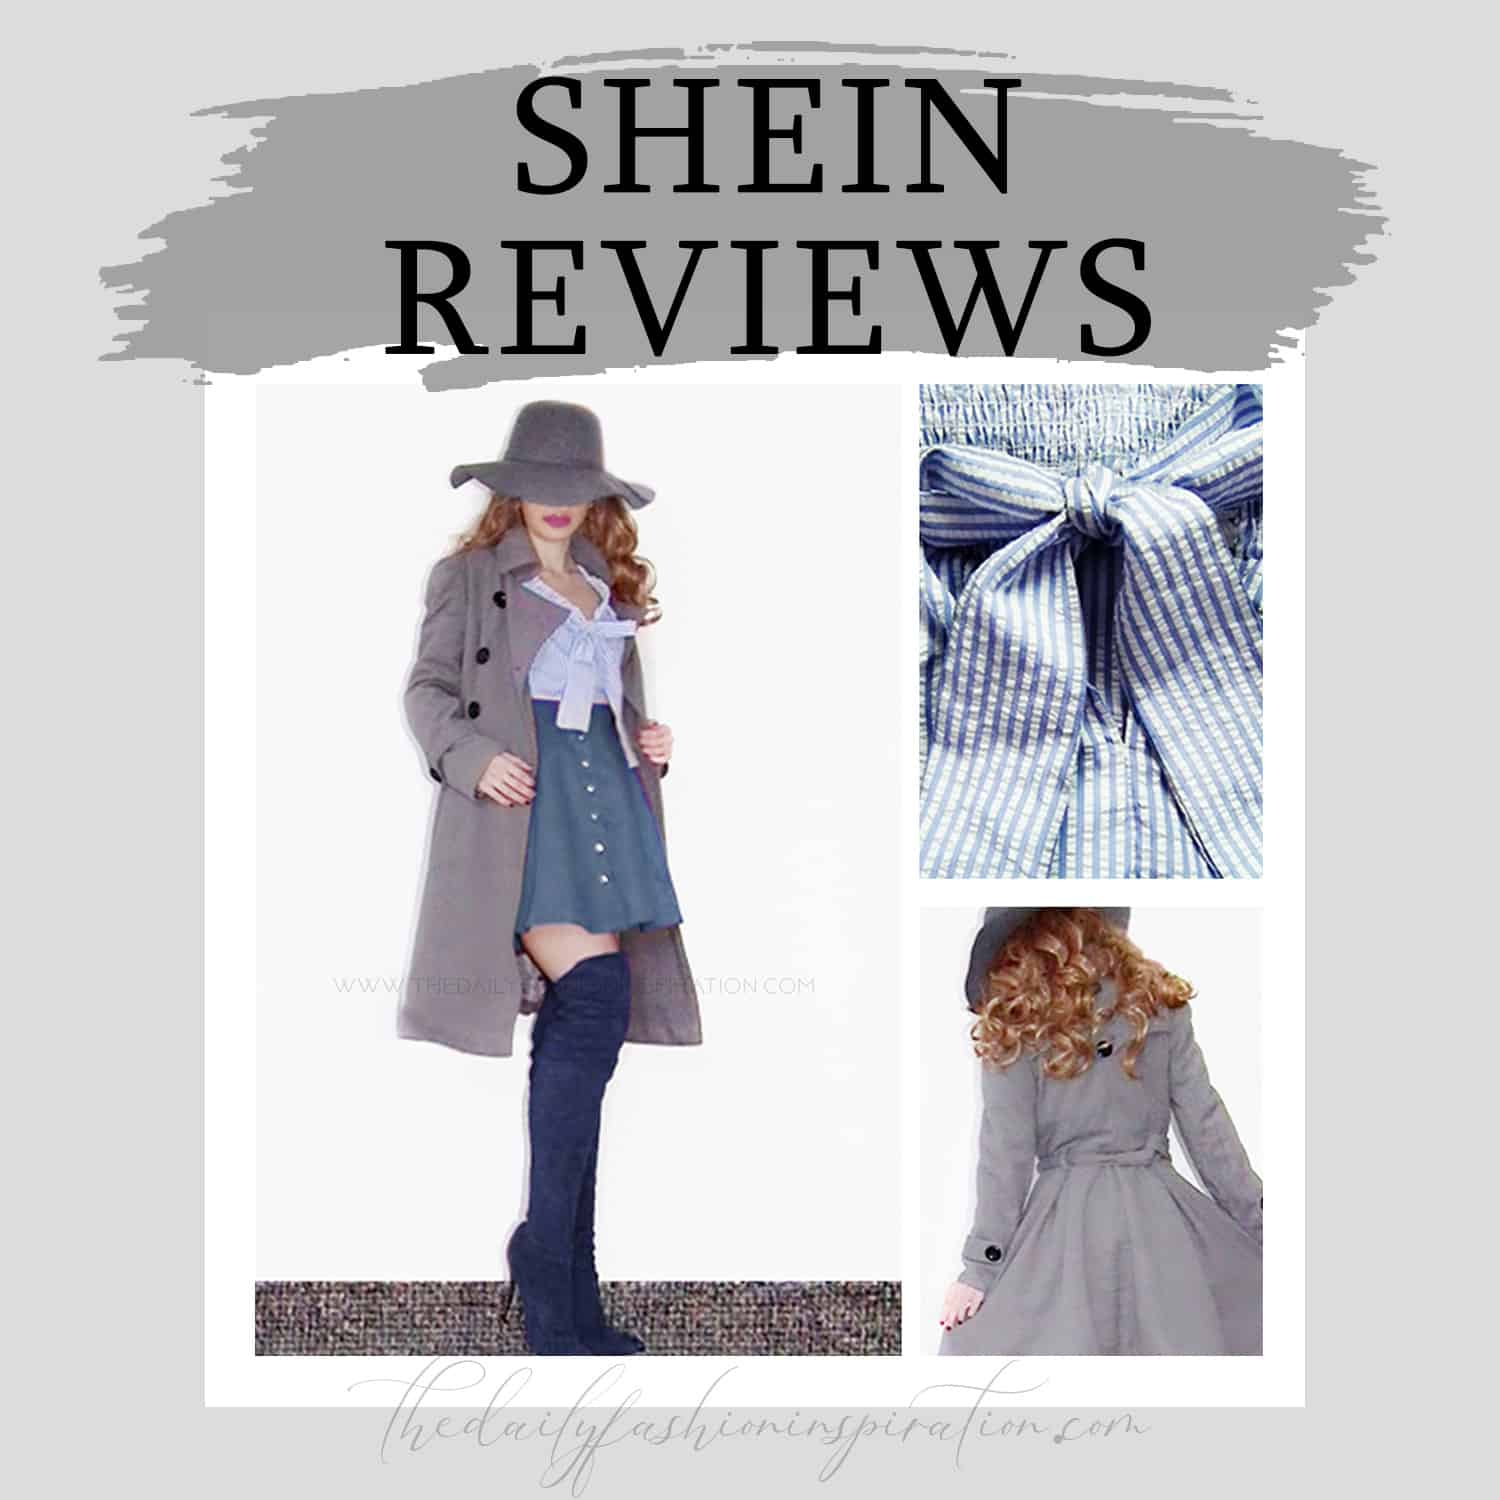 shein reviews